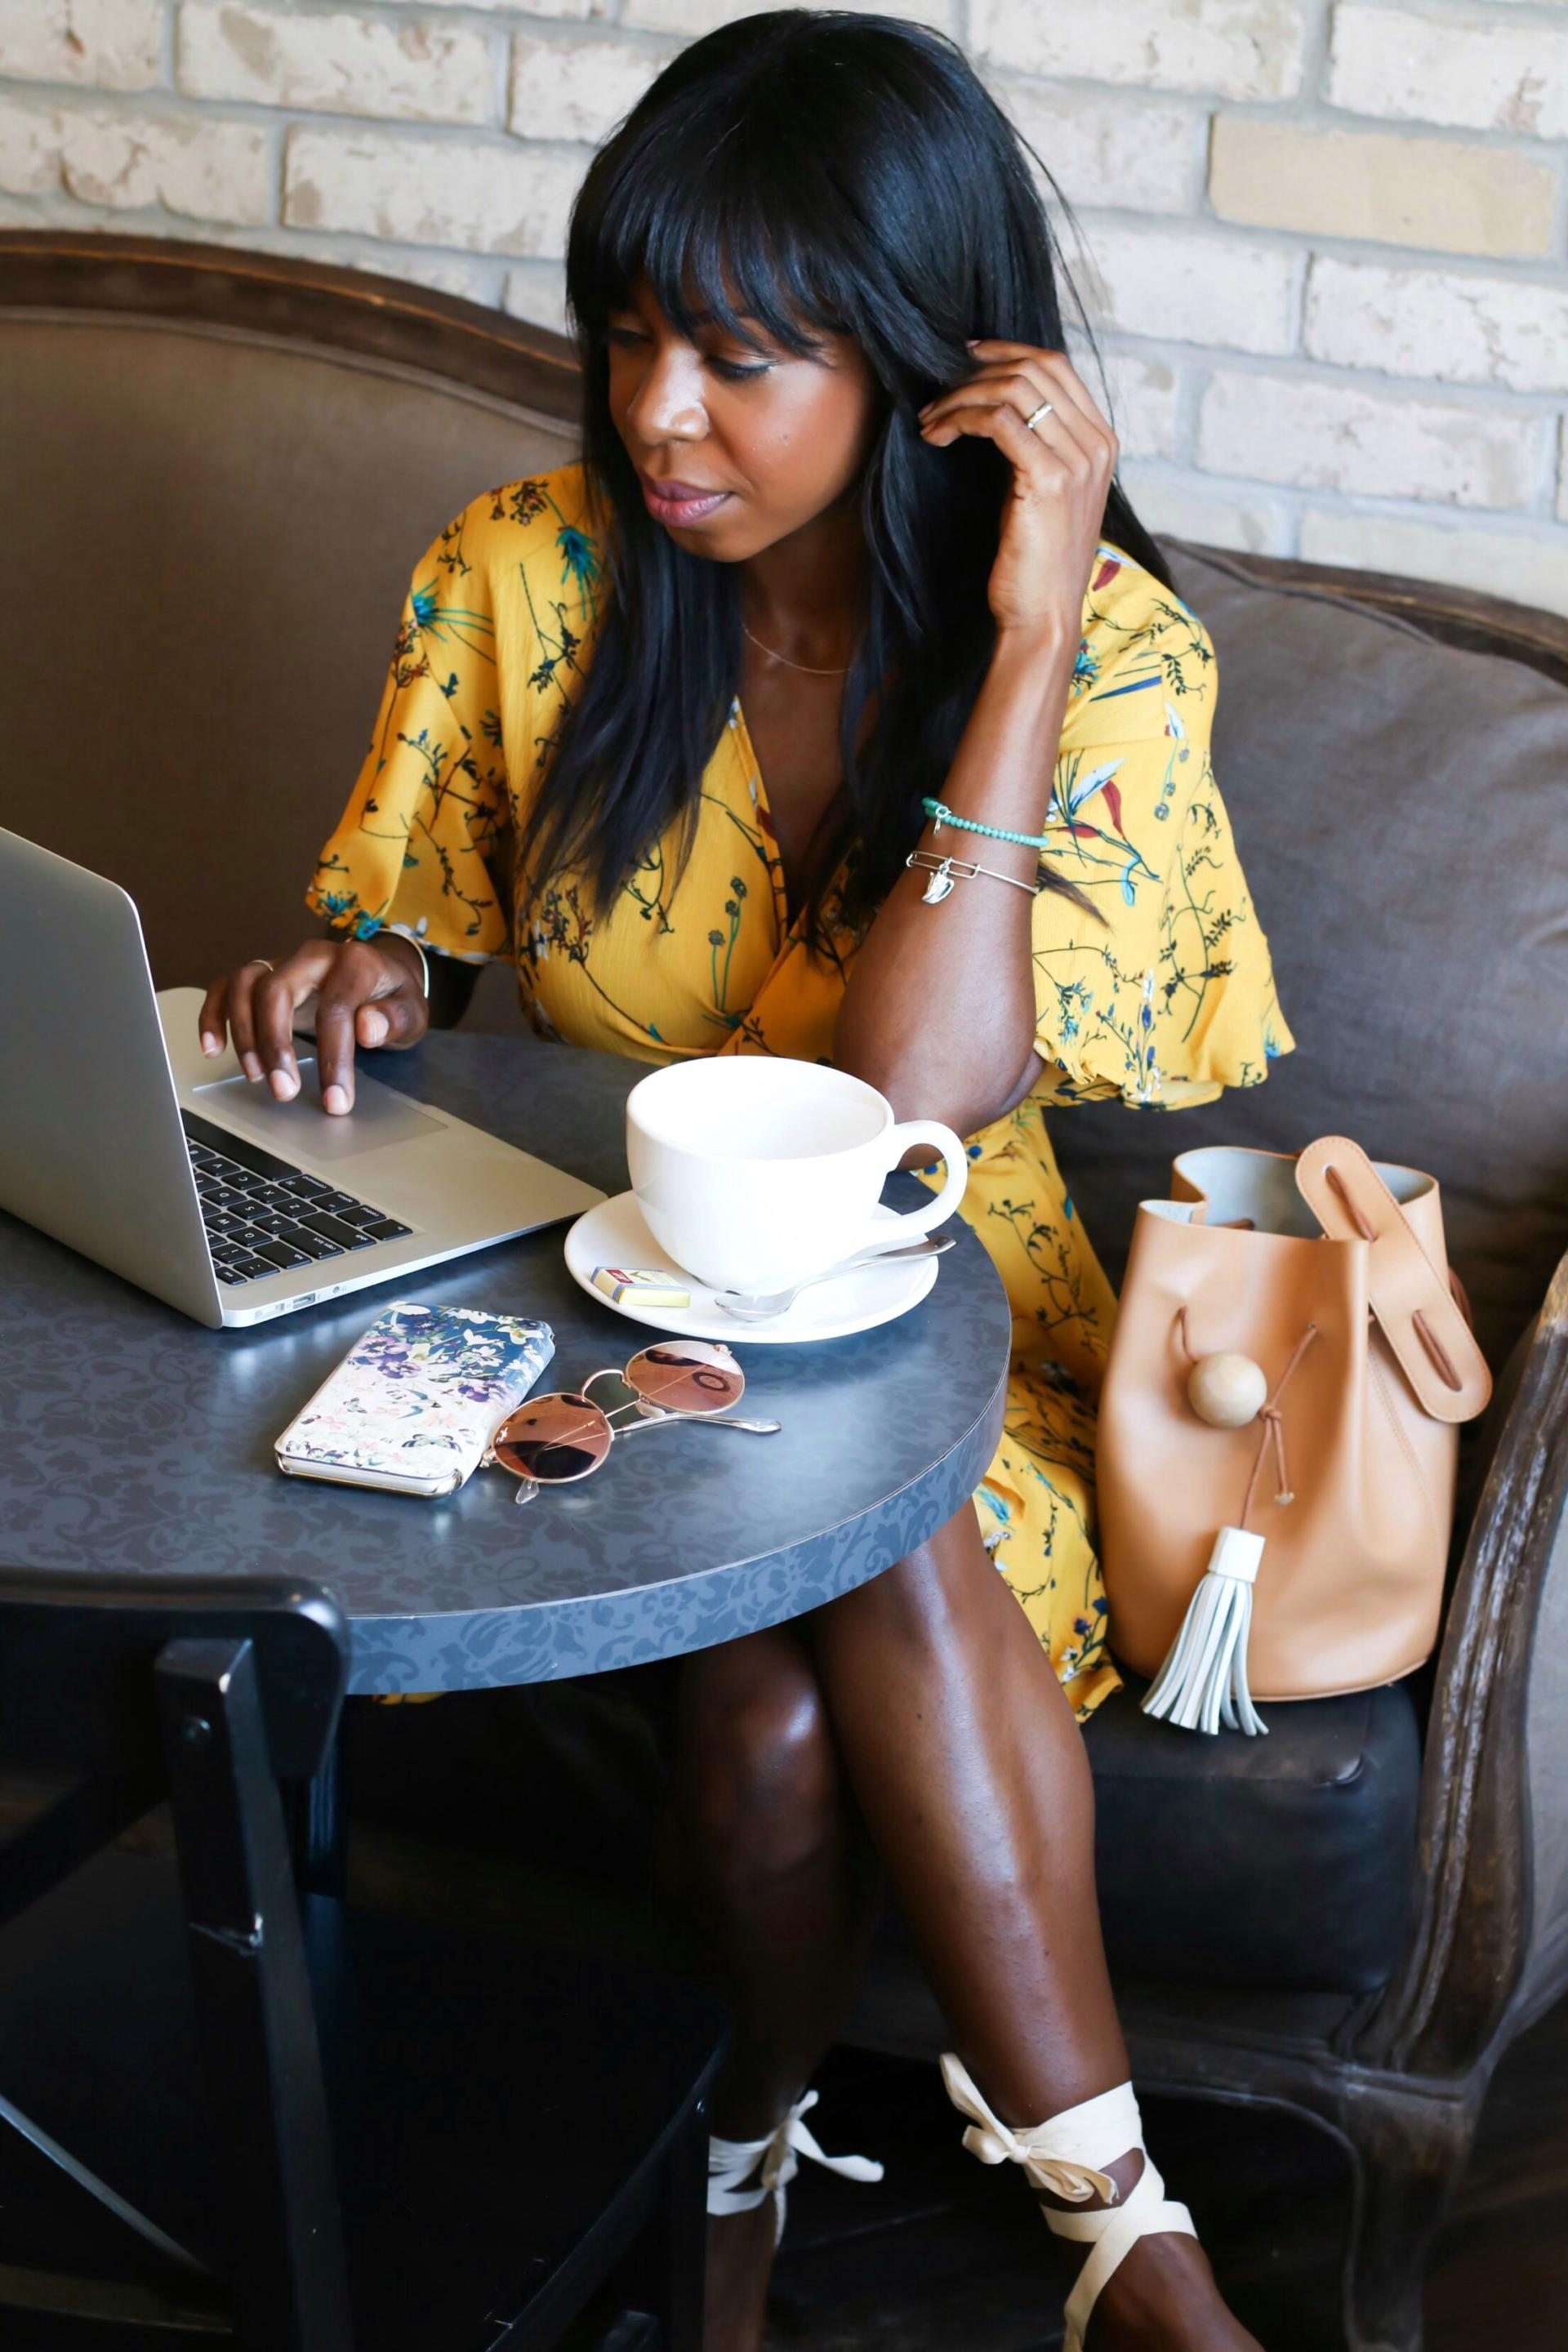 Need some help achieving your goals and milestones? Read on for my best tips!